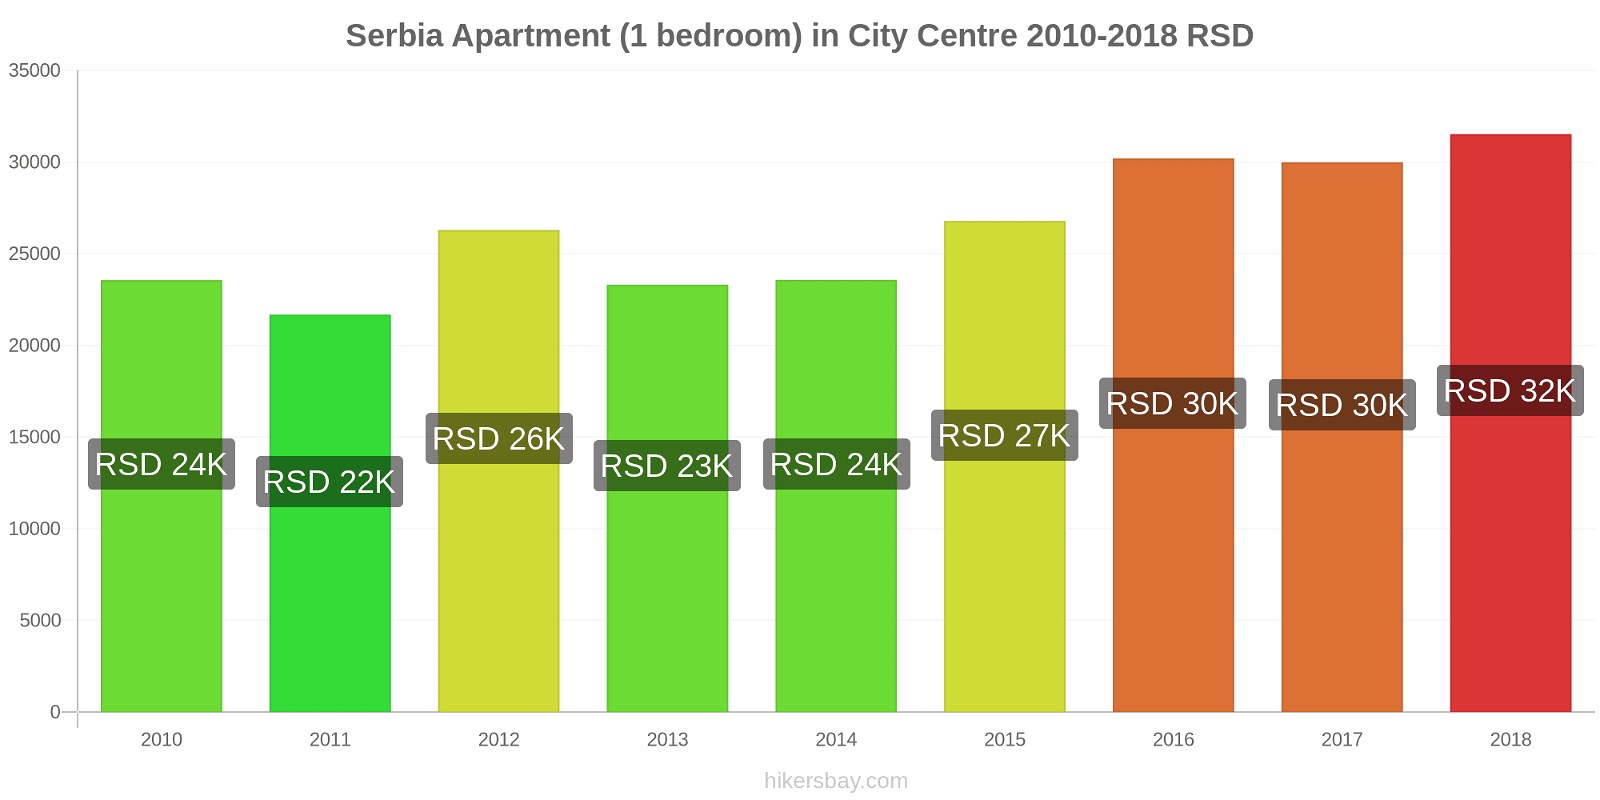 Serbia price changes Apartment (1 bedroom) in City Centre hikersbay.com